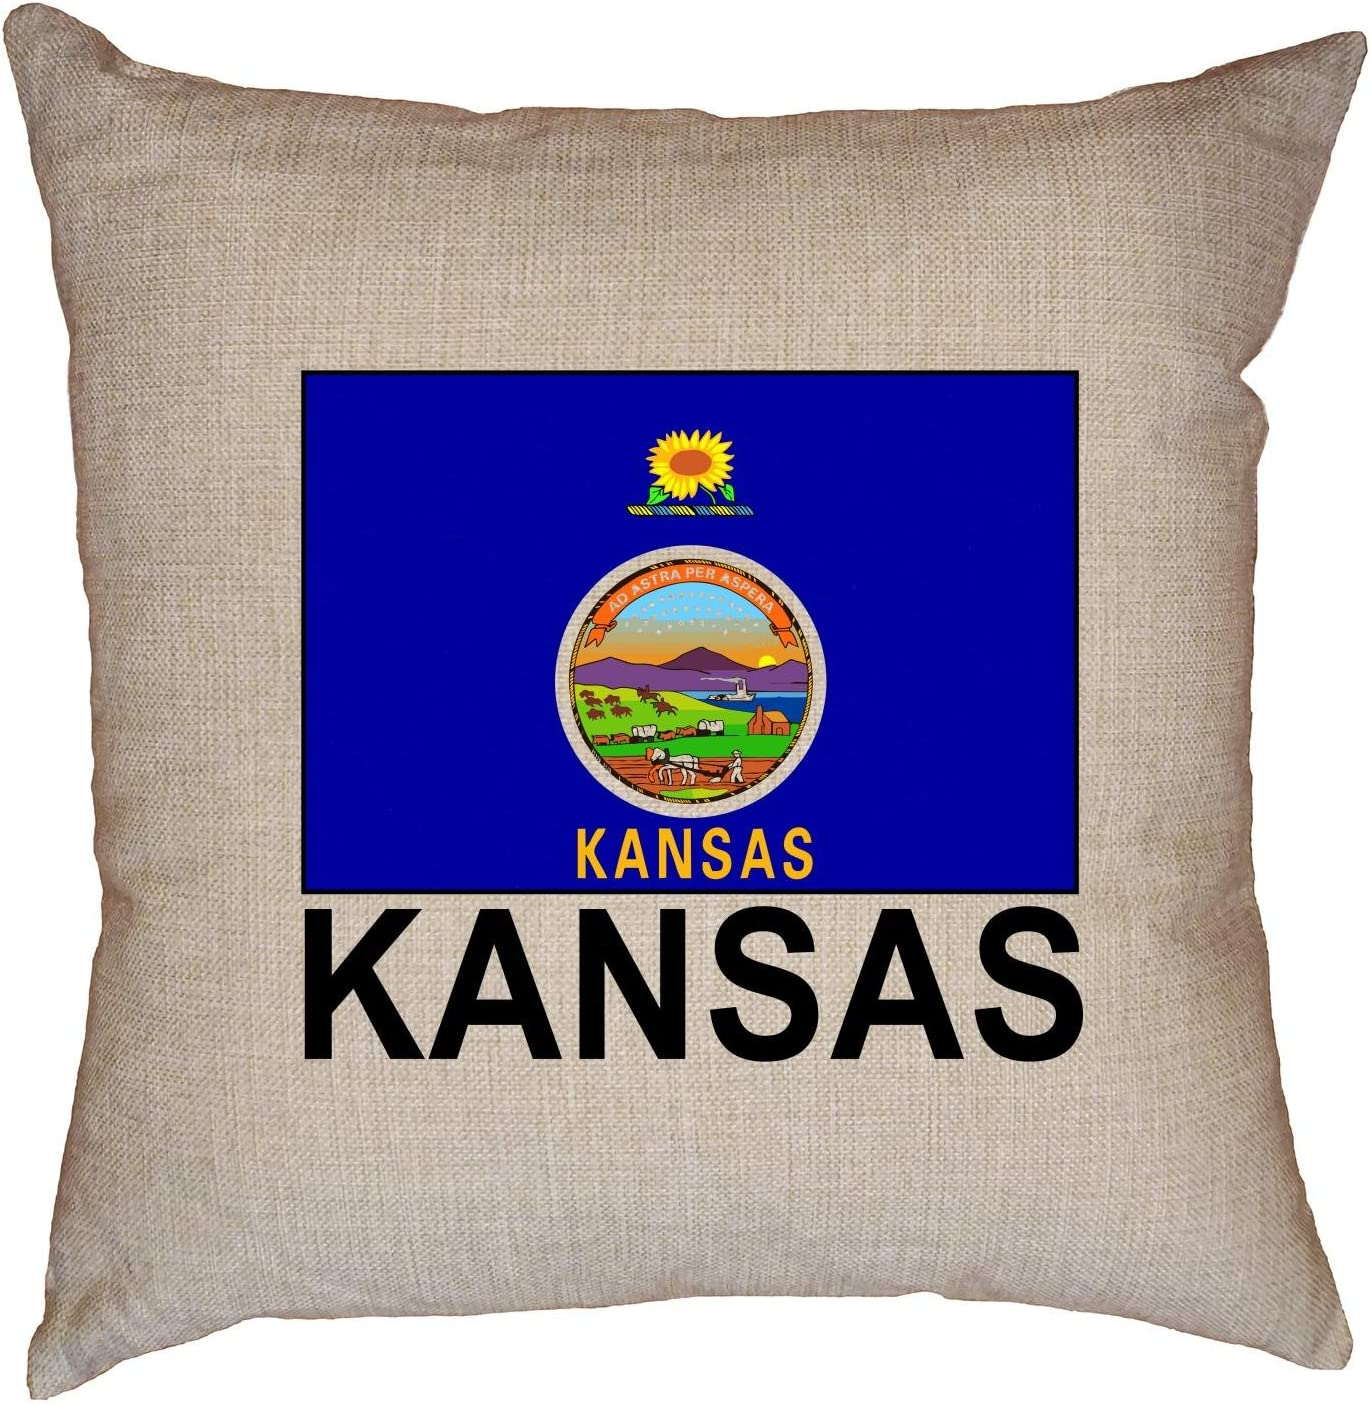 Hollywood Thread Kansas State Flag Special Vintage Edition Decorative Linen Throw Cushion Pillow Case With Insert Home Kitchen